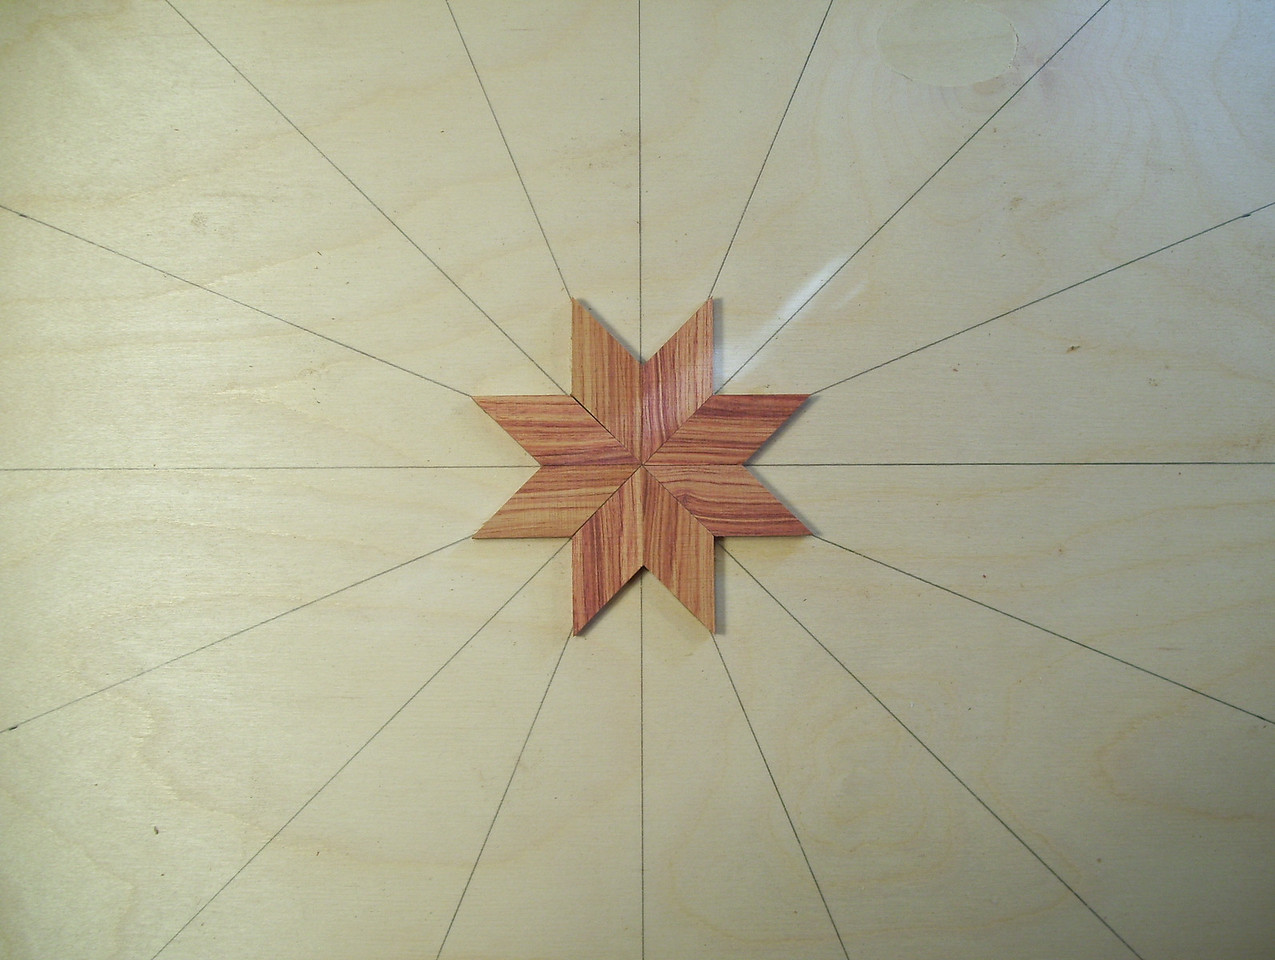 """Making a Lazy Susan #2<br /> Take a piece of ½"""" Baltic Birch Plywood and drew 8 lines clear across it, intersecting in the middle, equally spaced. They will be used to help guide the inner and outer points of the star, to try and keep them on the line. In the first and second pictures I have the lines drawn and the first 8 diamonds glued on forming the center of the star."""